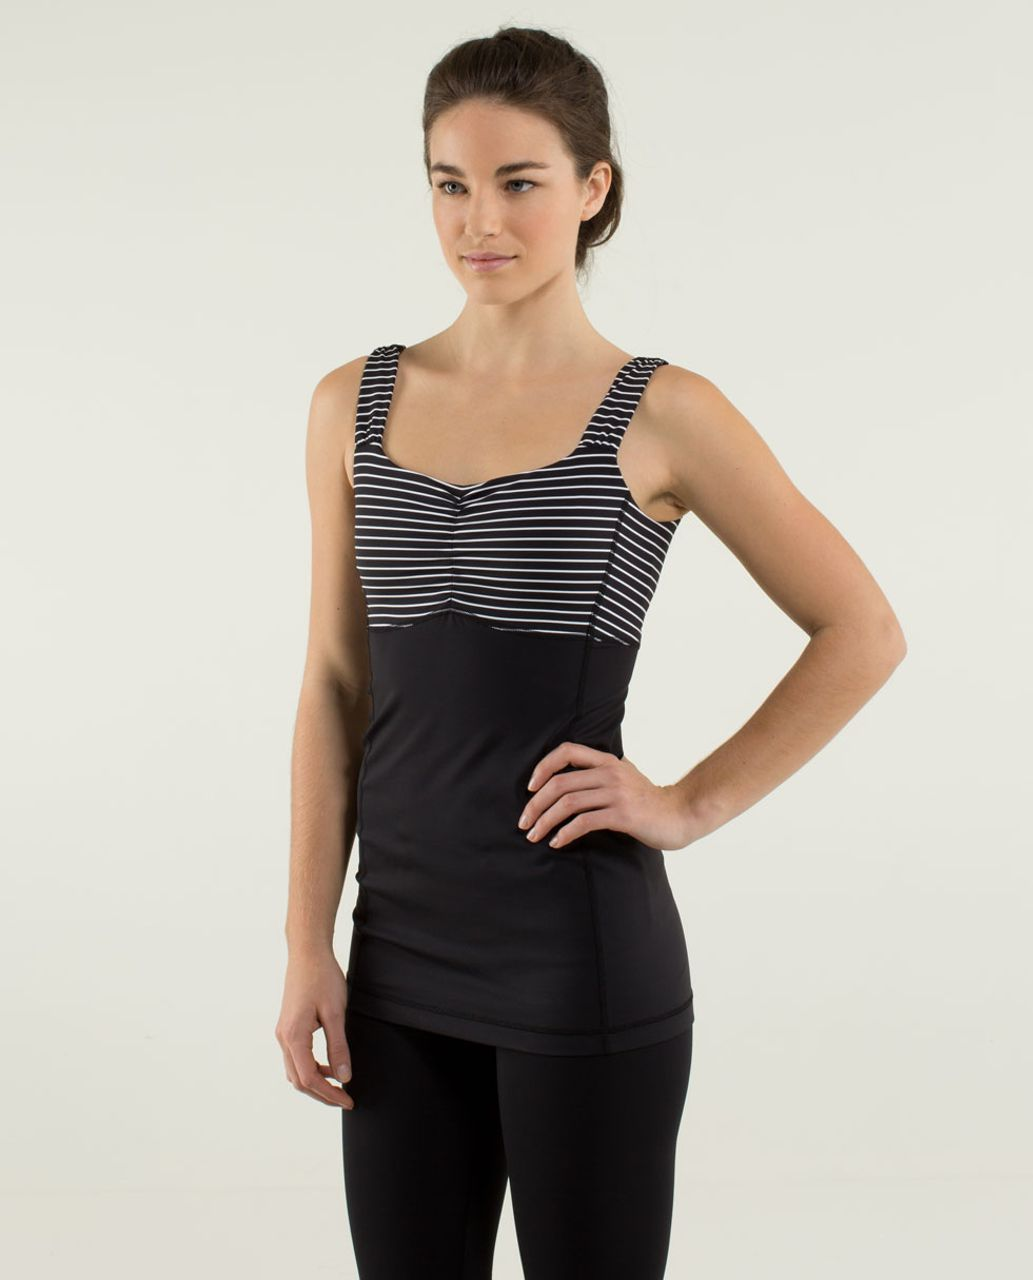 Lululemon Aria Tank II - Parallel Stripe Black White / Black